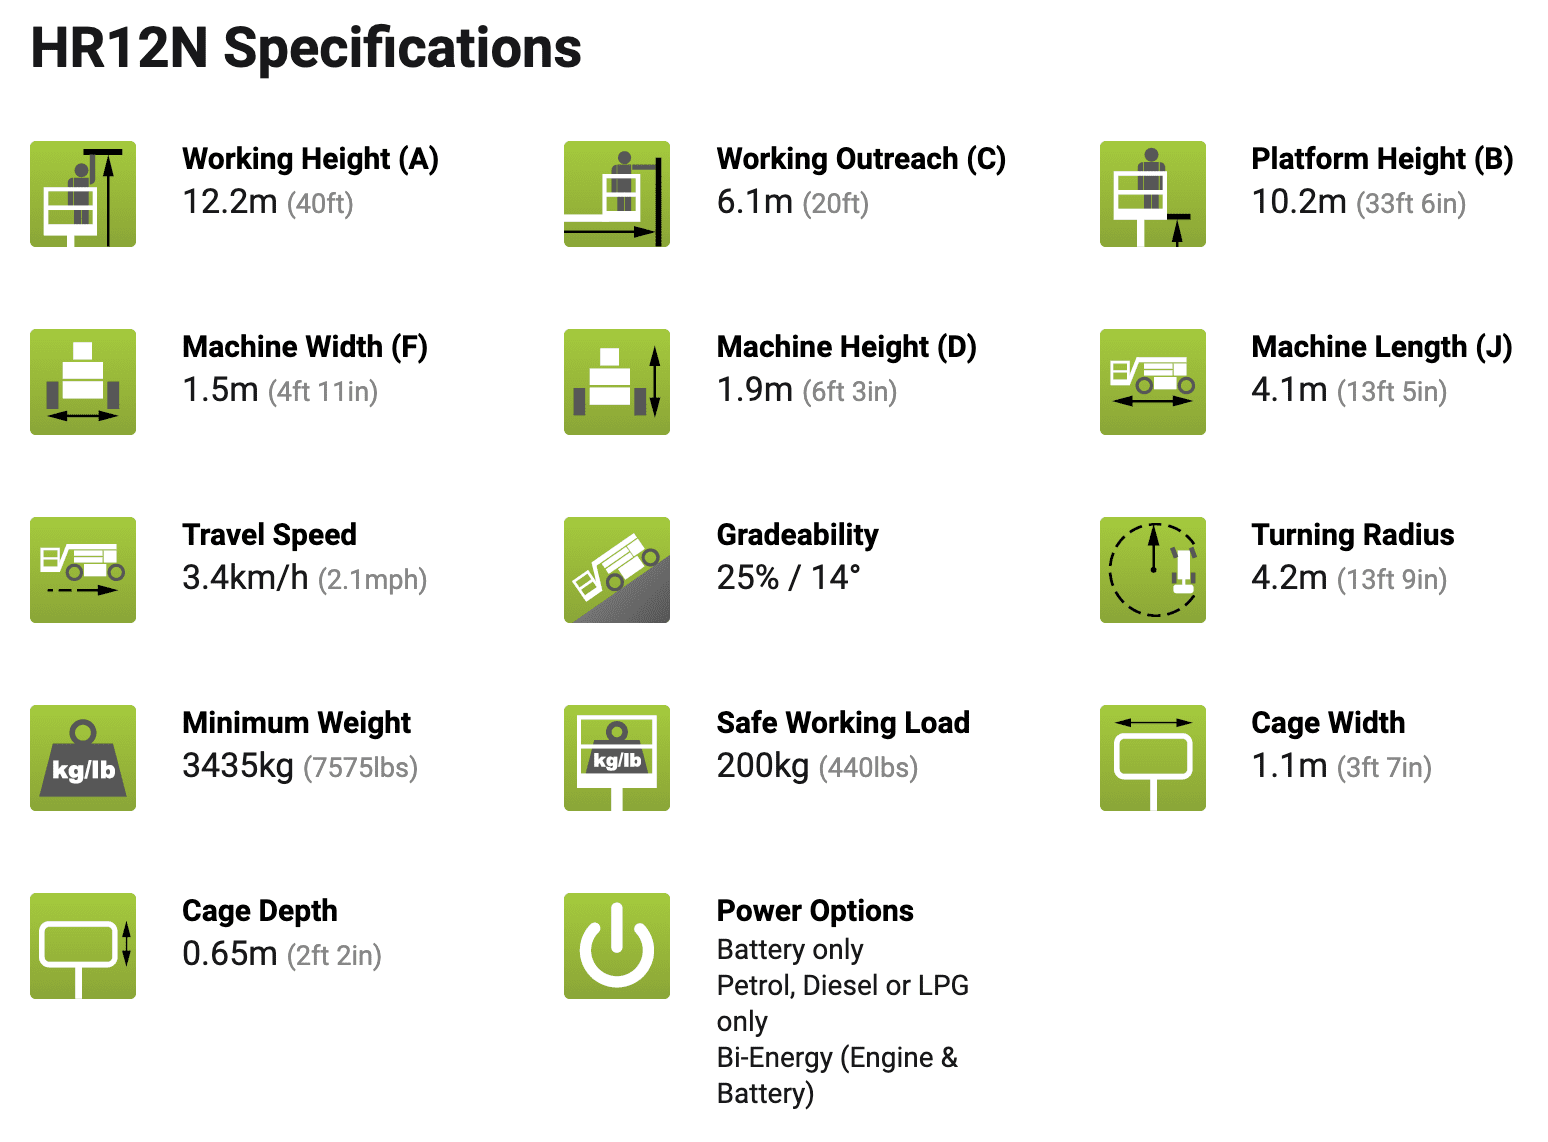 specifications HR12N